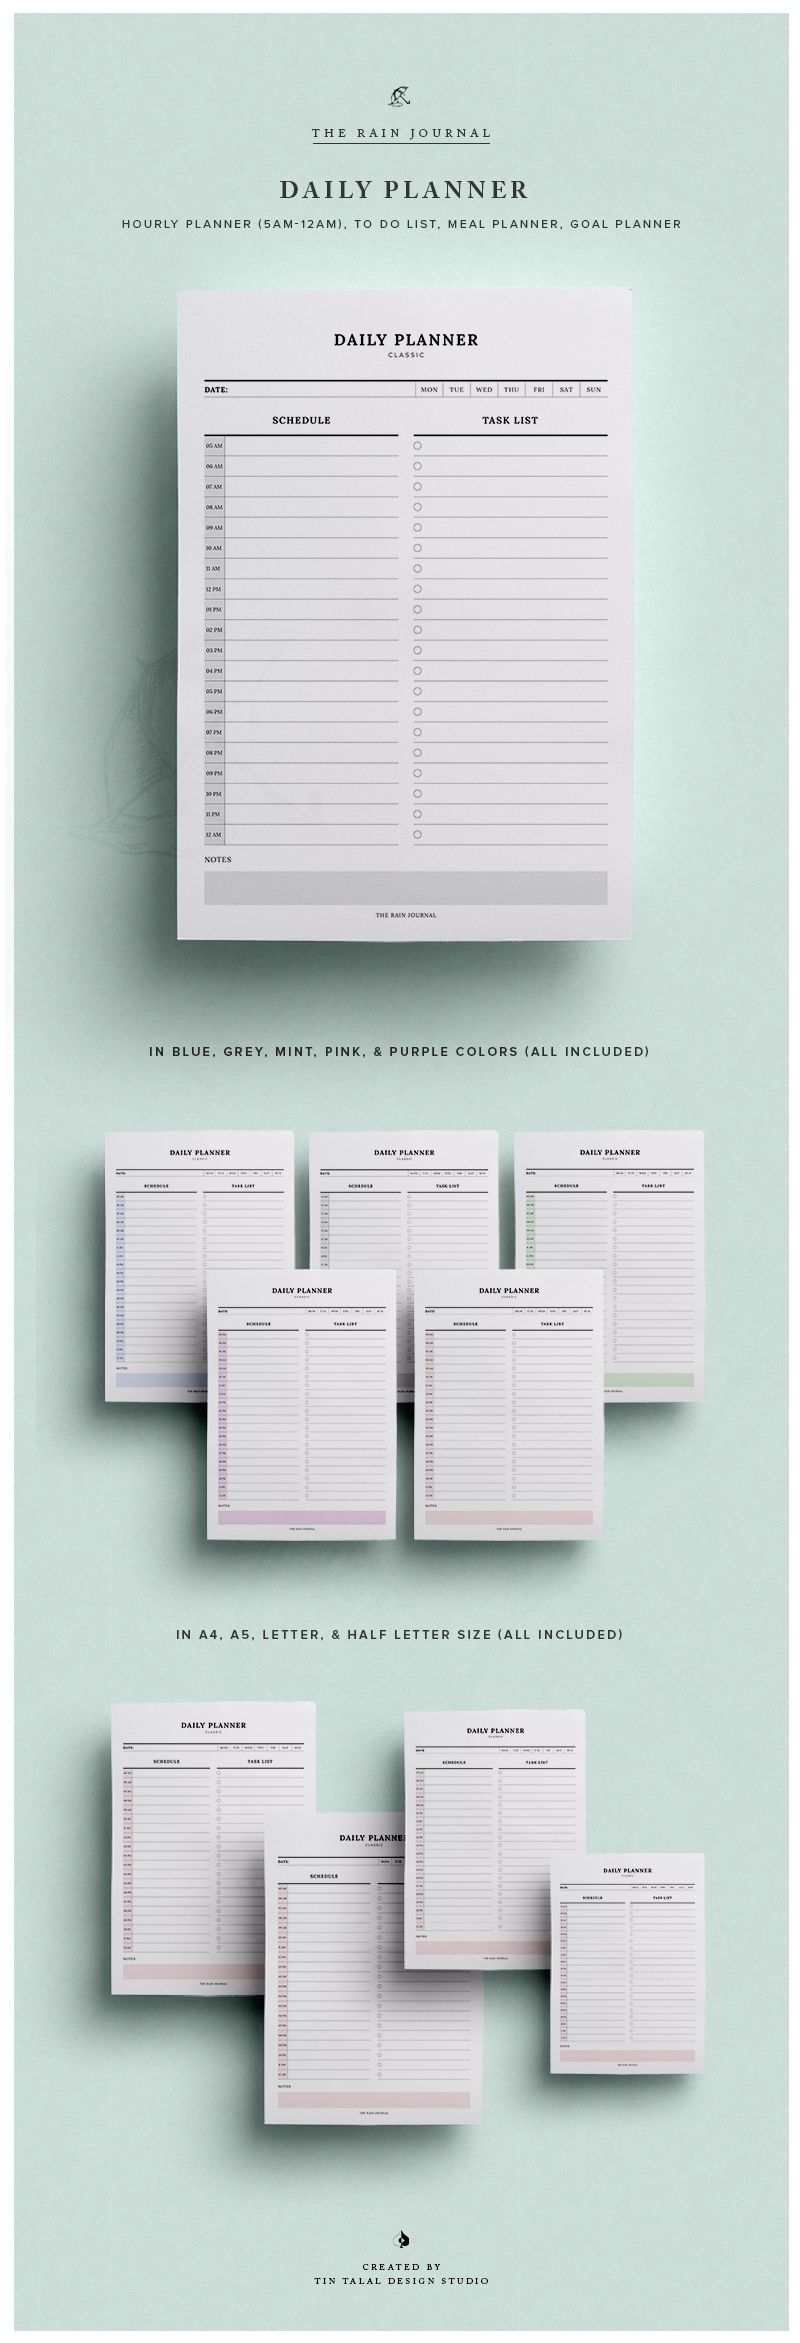 Daily Schedule Printable w/ Hourly Planner & Daily To Do List ...